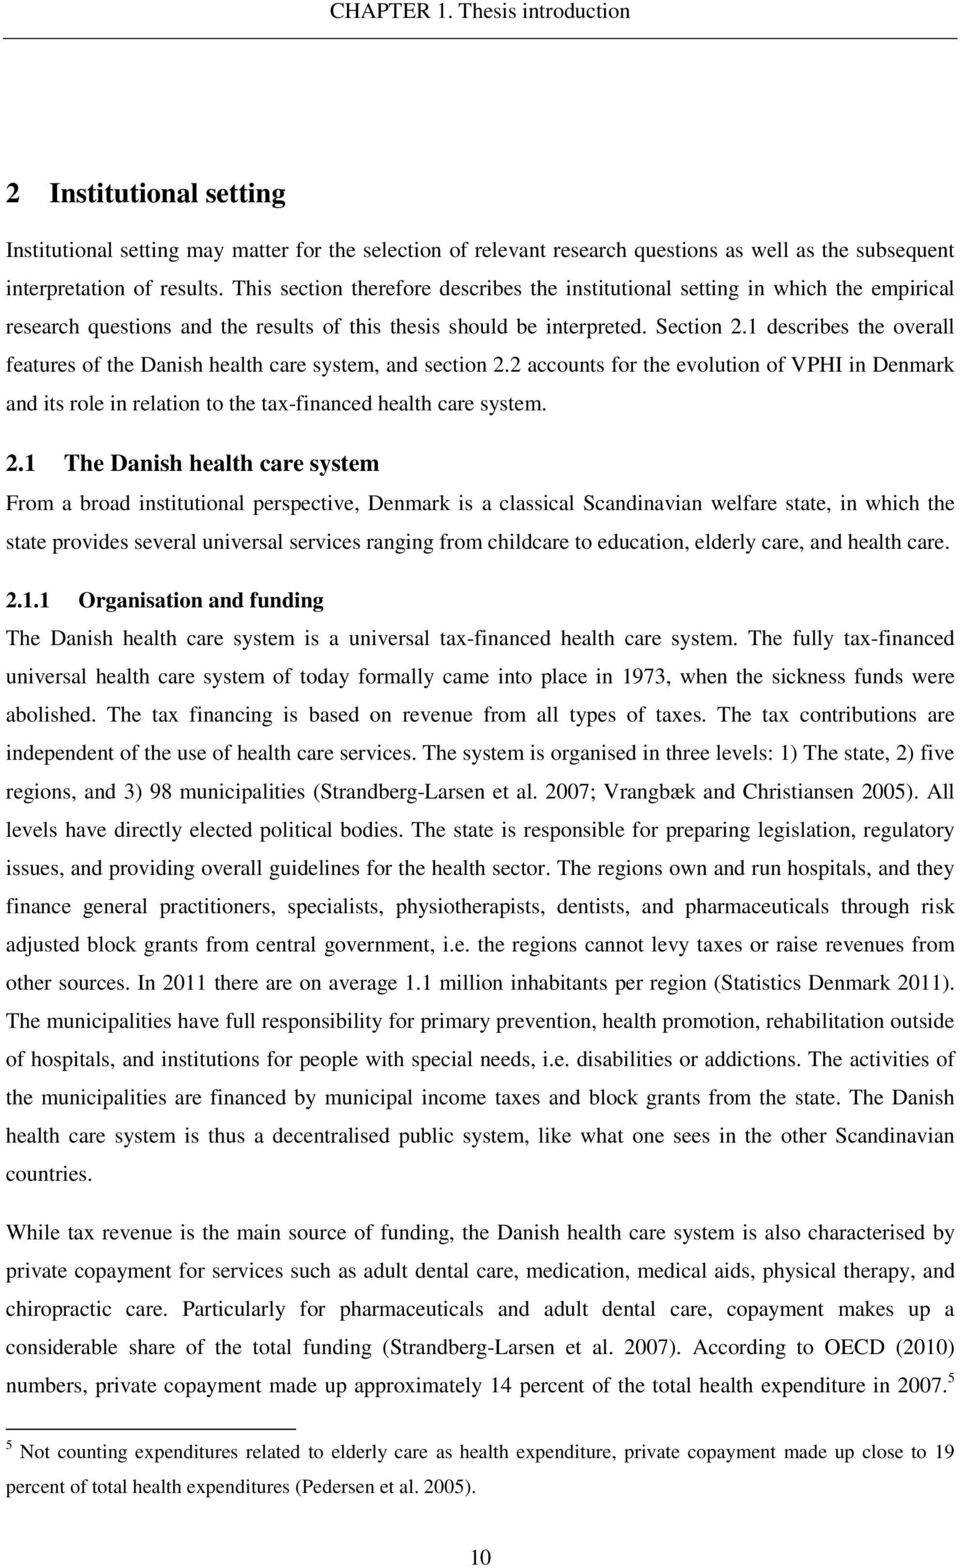 1 describes the overall features of the Danish health care system, and section 2.